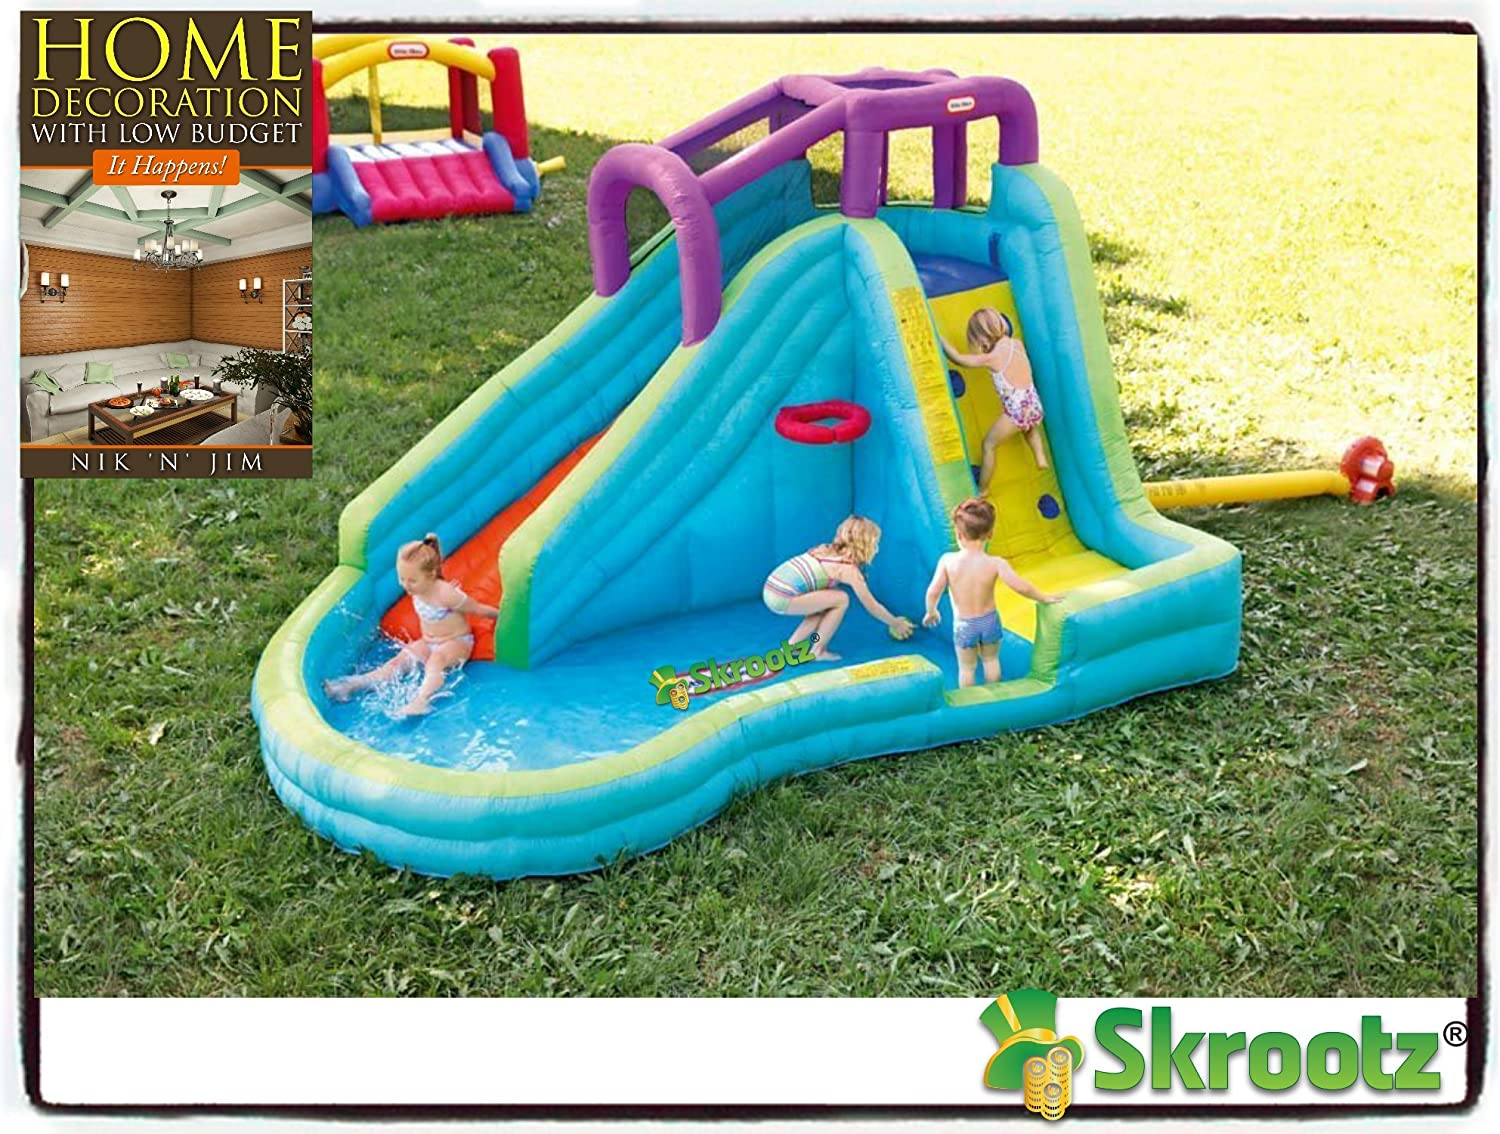 Amazon Com Inflatable Bounce House Jump Splash Adventure Water Slide Bouncer Pool Waterslide New Kids Home Banzai Outdoor Slip Fun Backyard Park Commercial Toys Pools Guarantee Toys Games